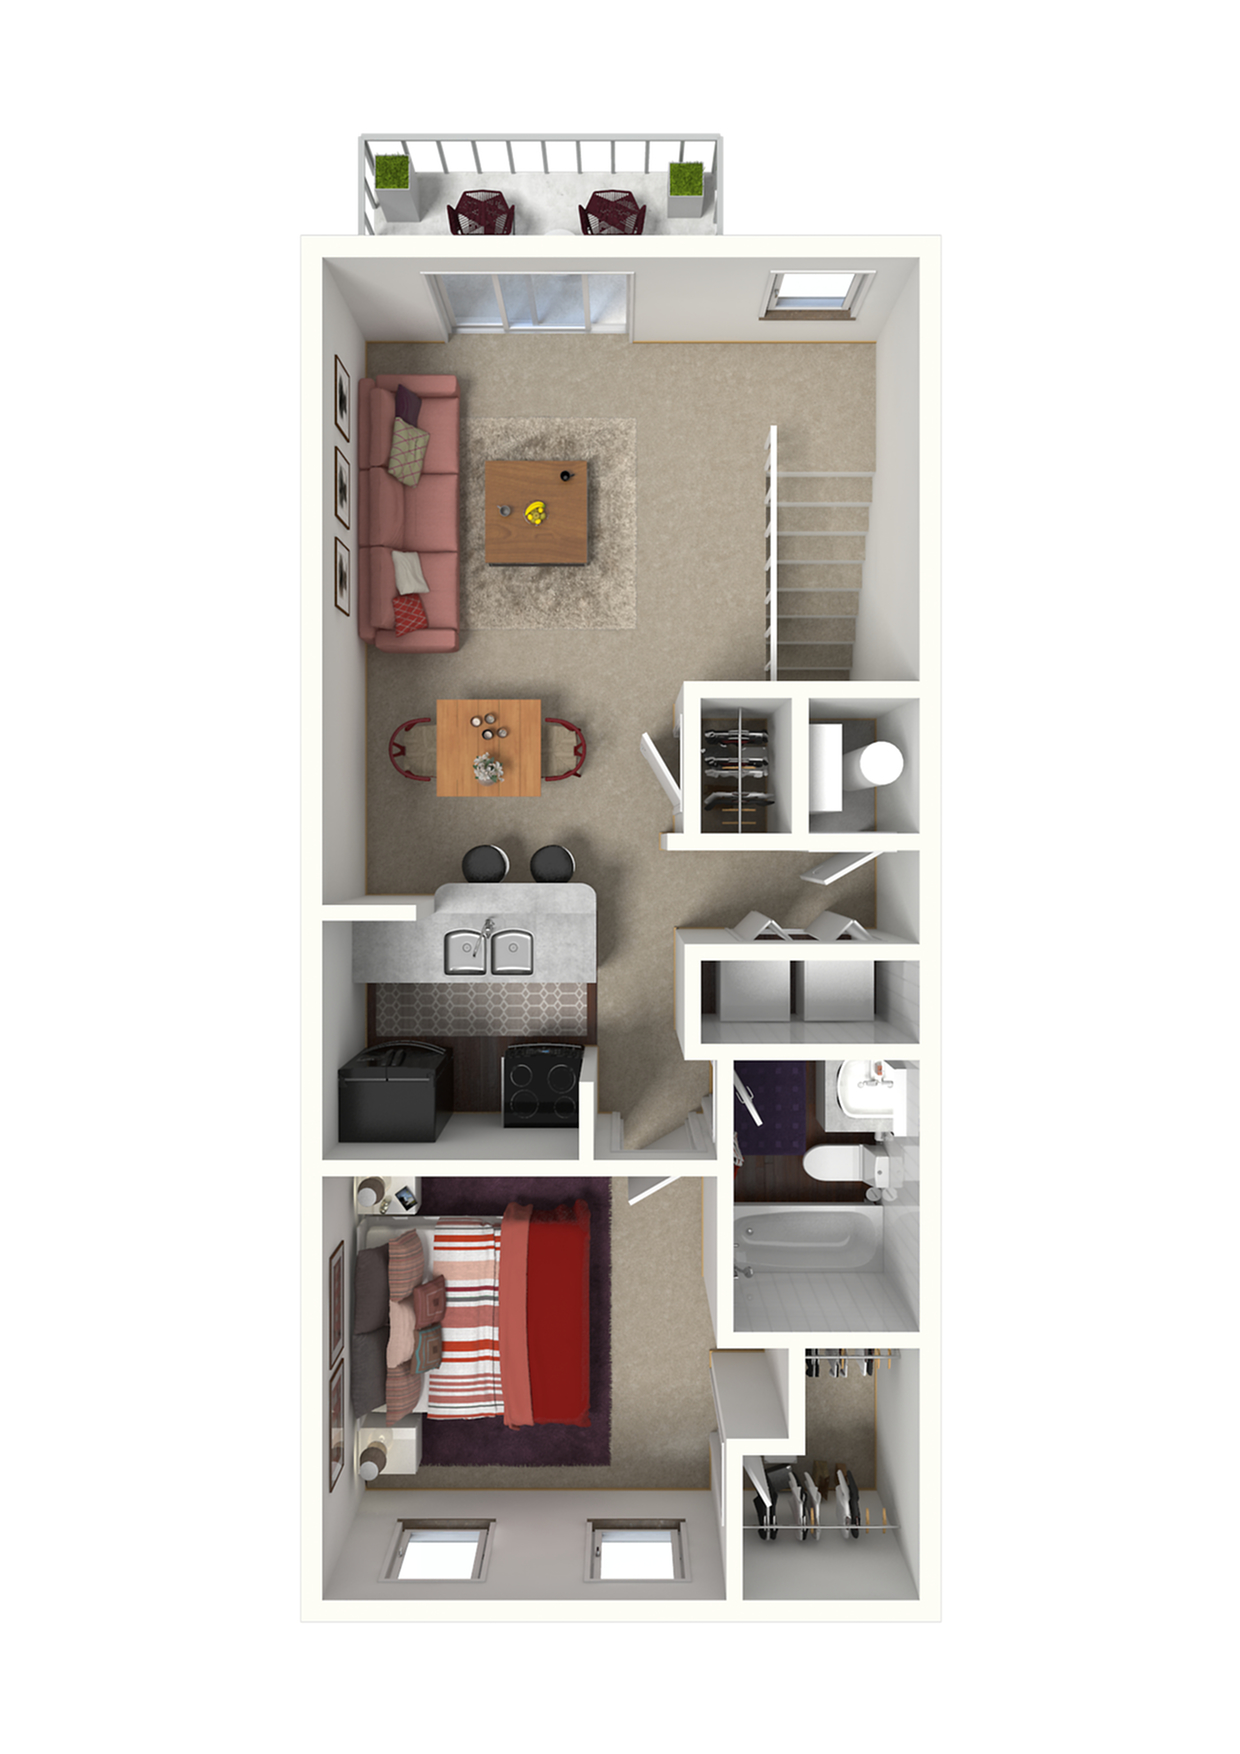 San Diego Floor Plan - 1x1 720 SqFt.